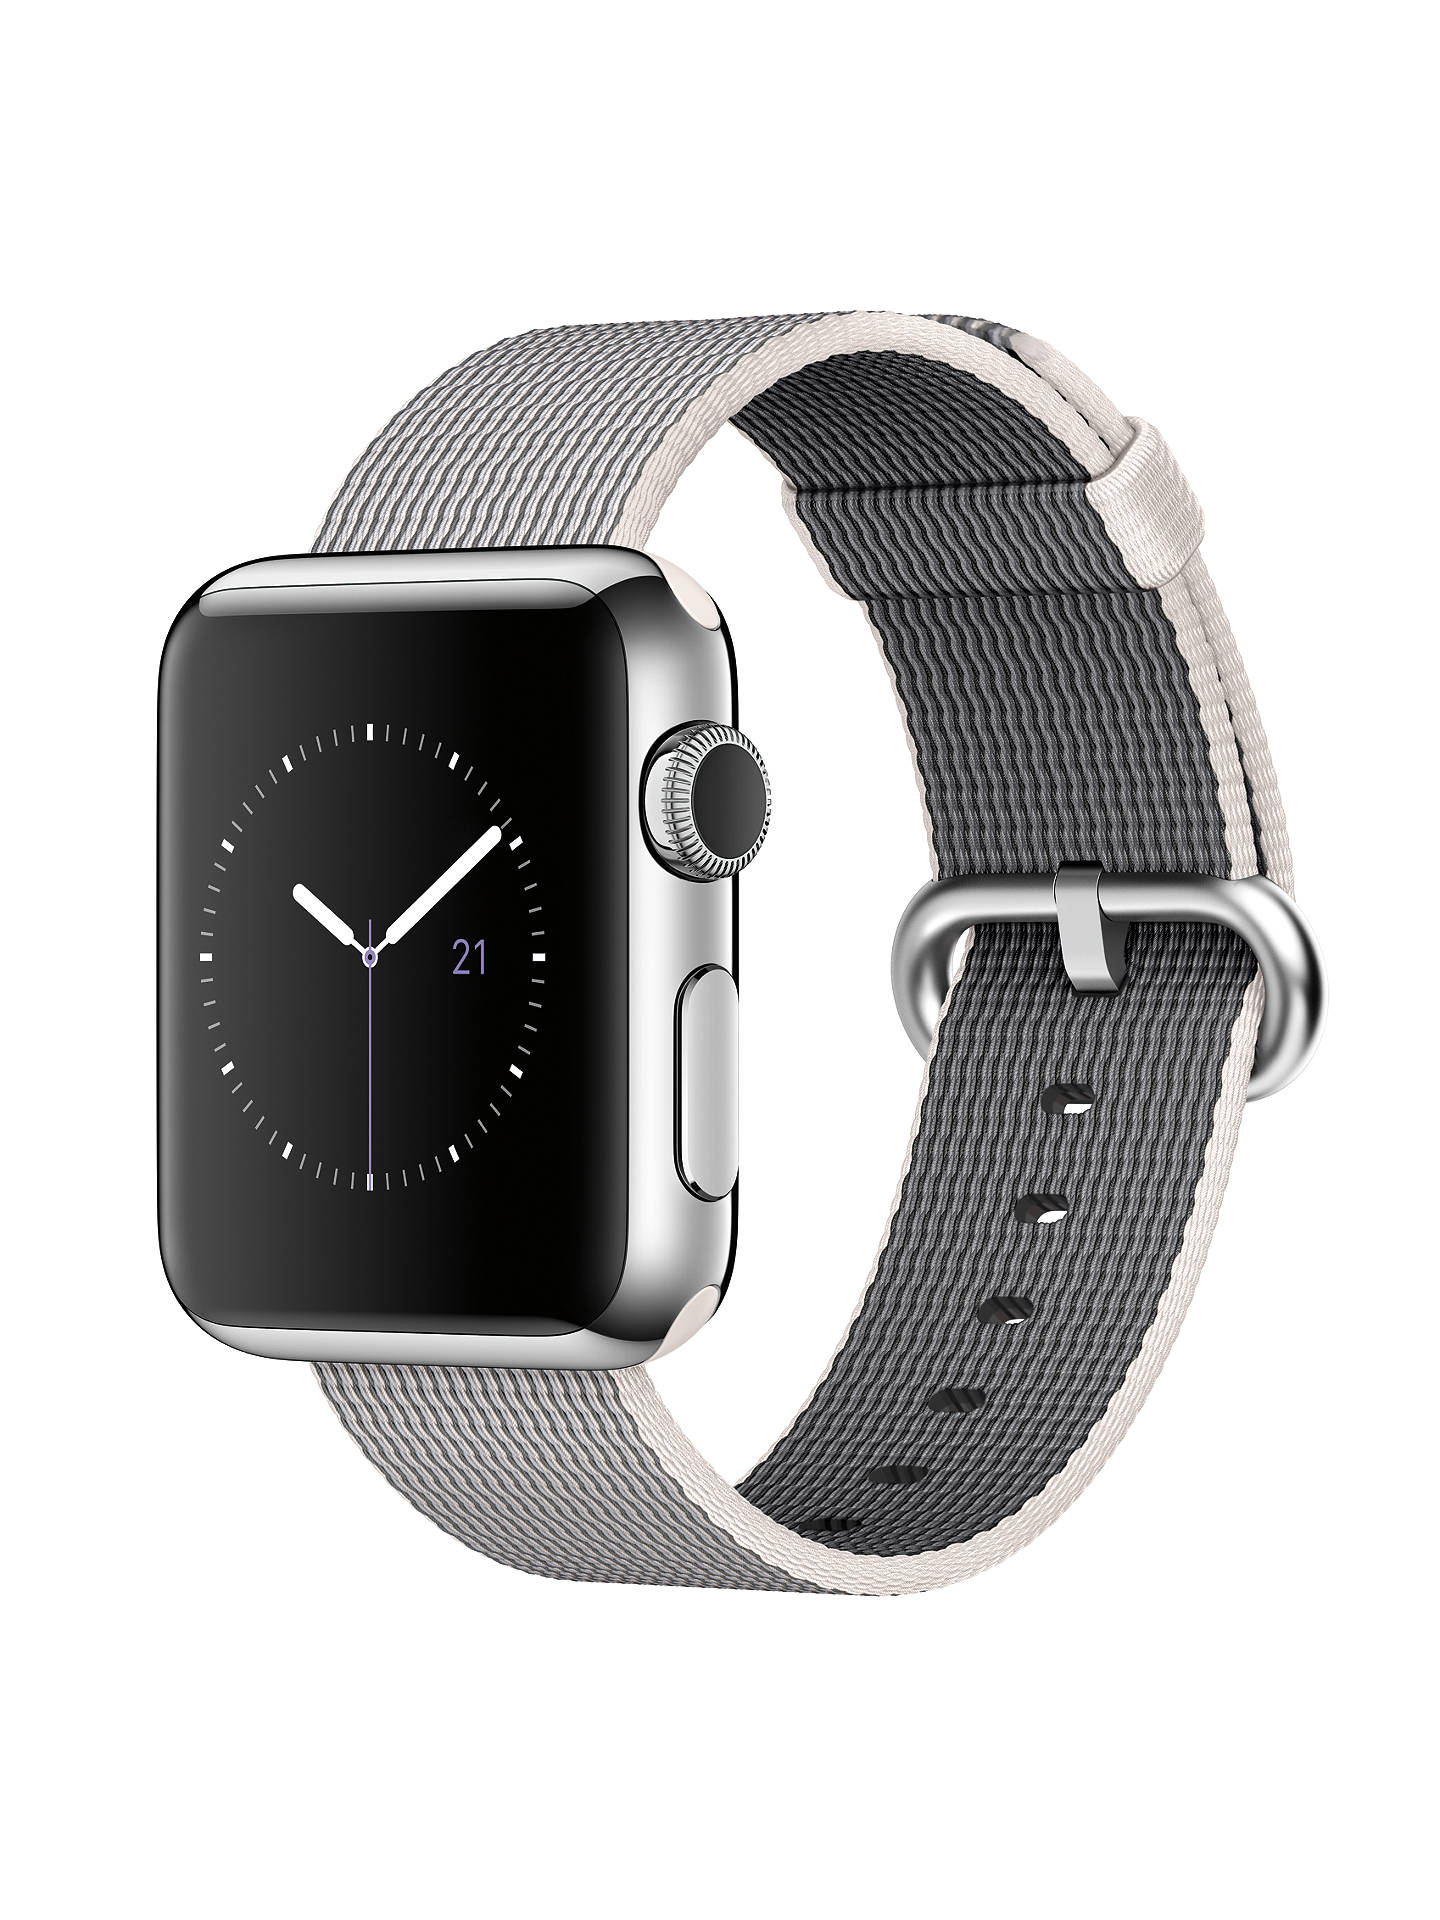 Buy Apple Watch 1st Gen 38mm Stainless Steel Case & Woven Nylon Band, Pearl Online at johnlewis.com